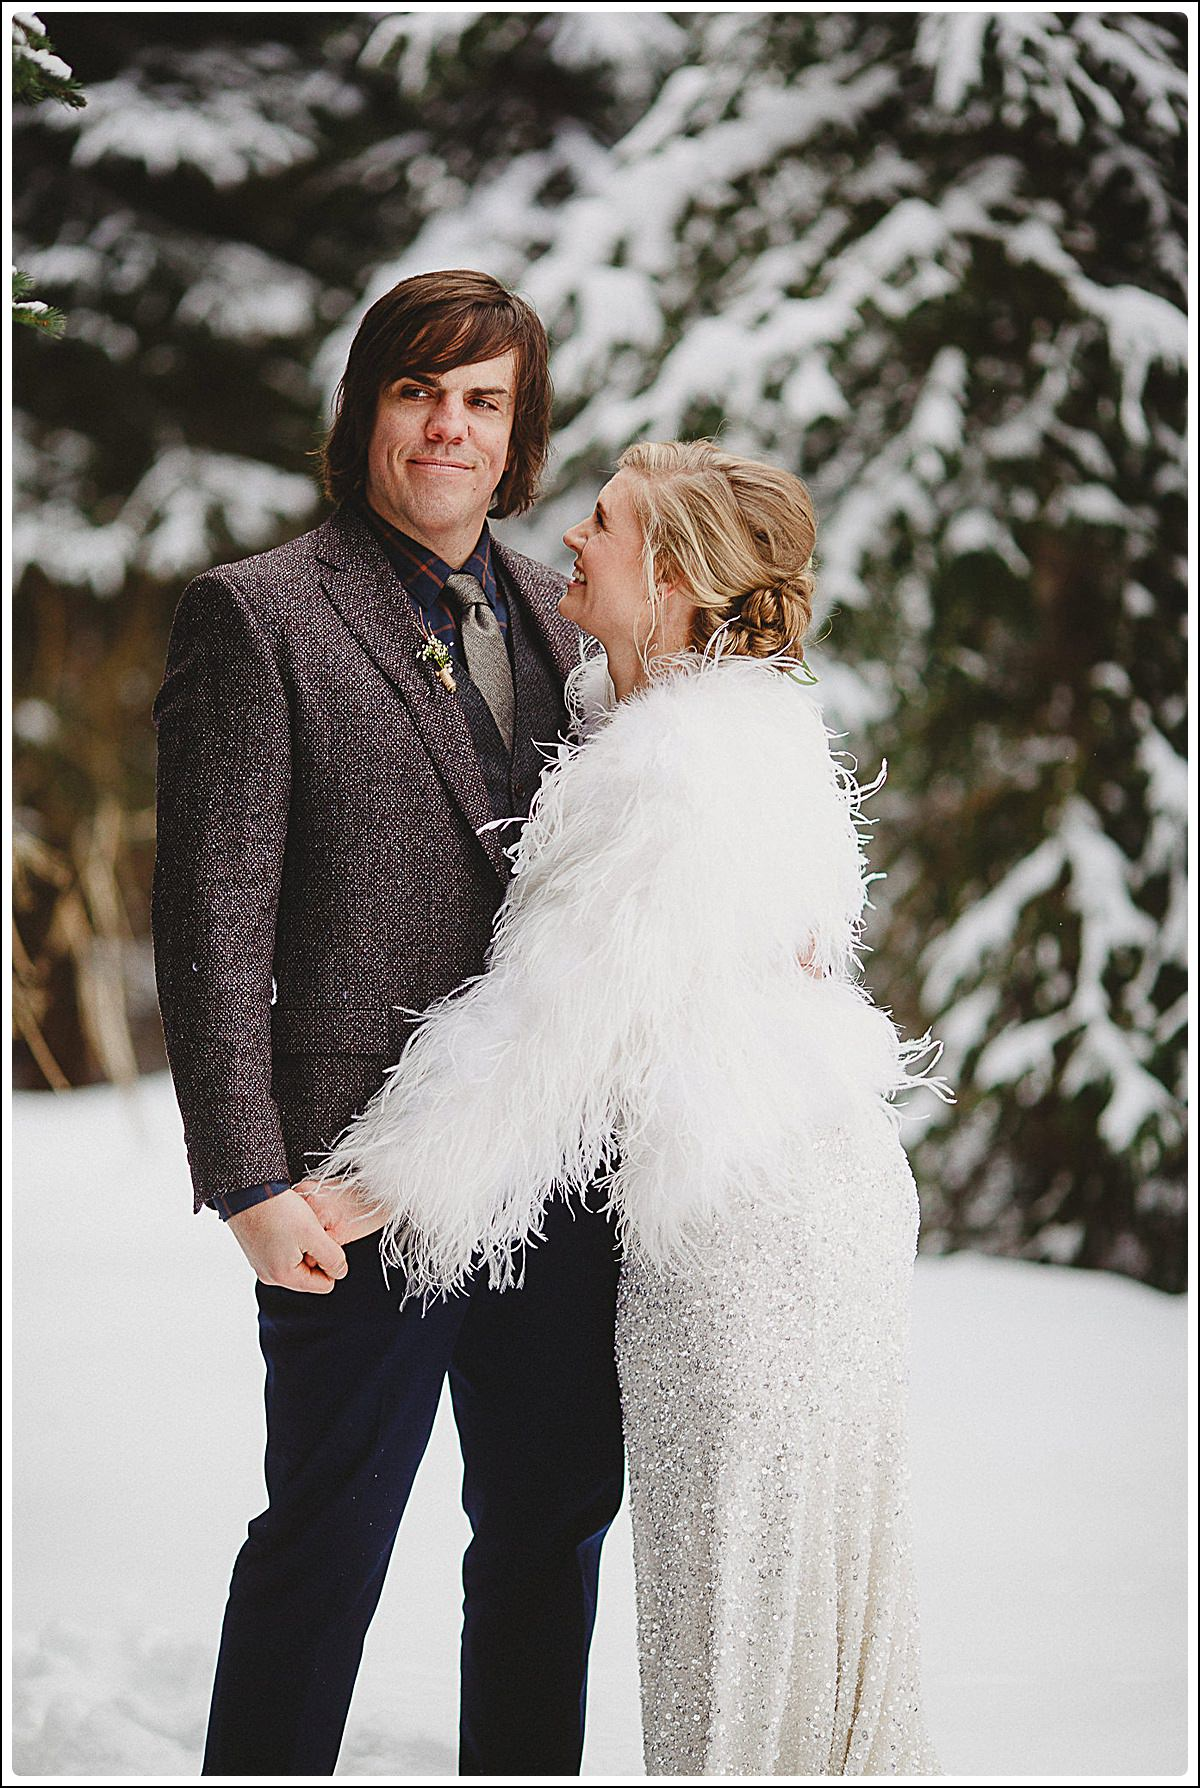 2017,6:8 Wedding Photography,December,Forest,Island Lake Lodge Wedding Photographers,Island Lake Winter,Jon,Megan,Megan and Jon,Snowy Trees,Trees,Winter Wedding,island lake lodge,